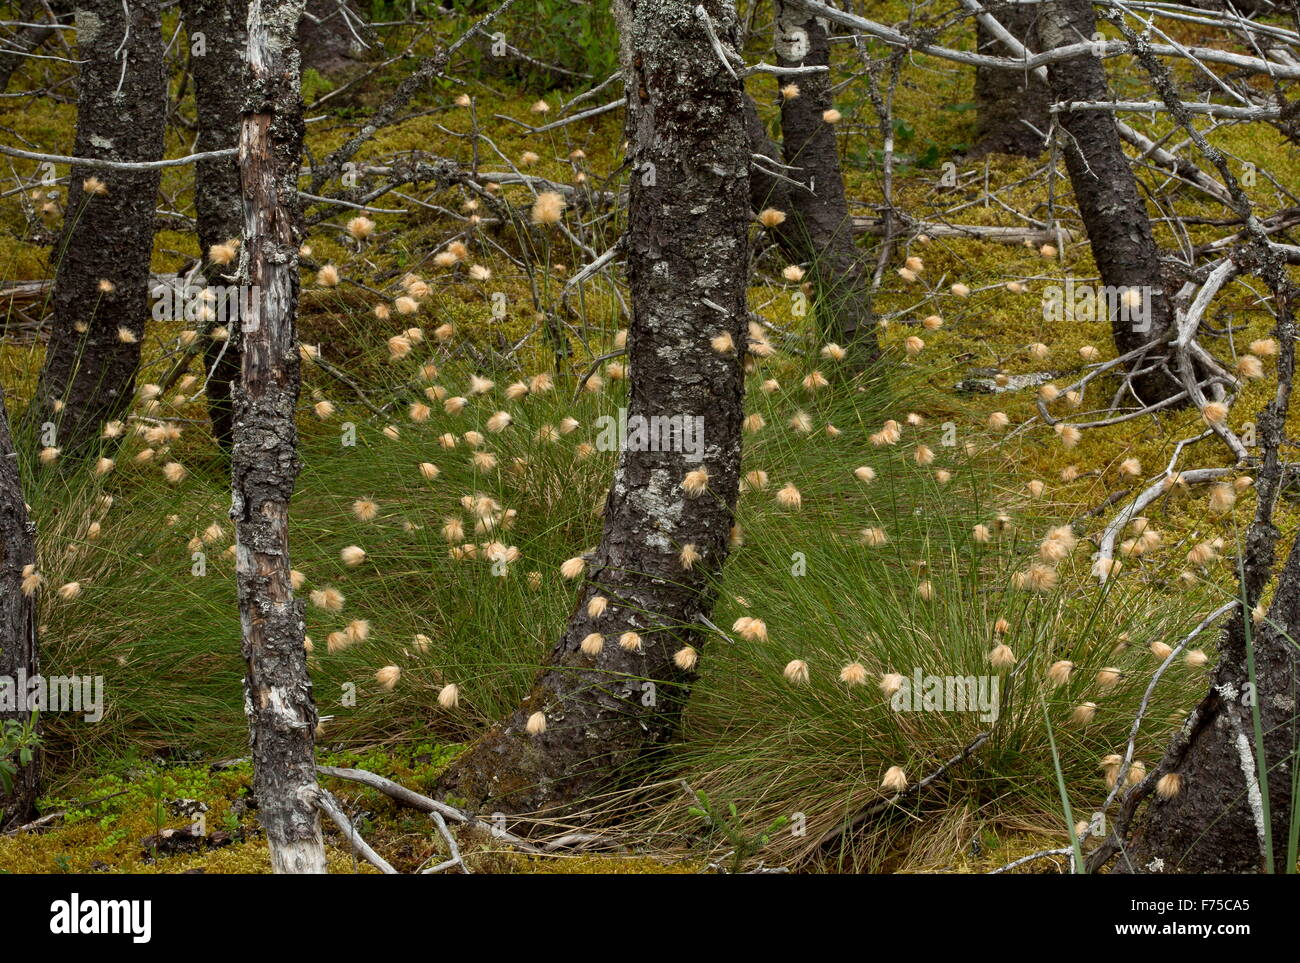 Chamisso's cottongrass or russet cottongrass, in fruit, in woodland, Newfoundland. - Stock Image